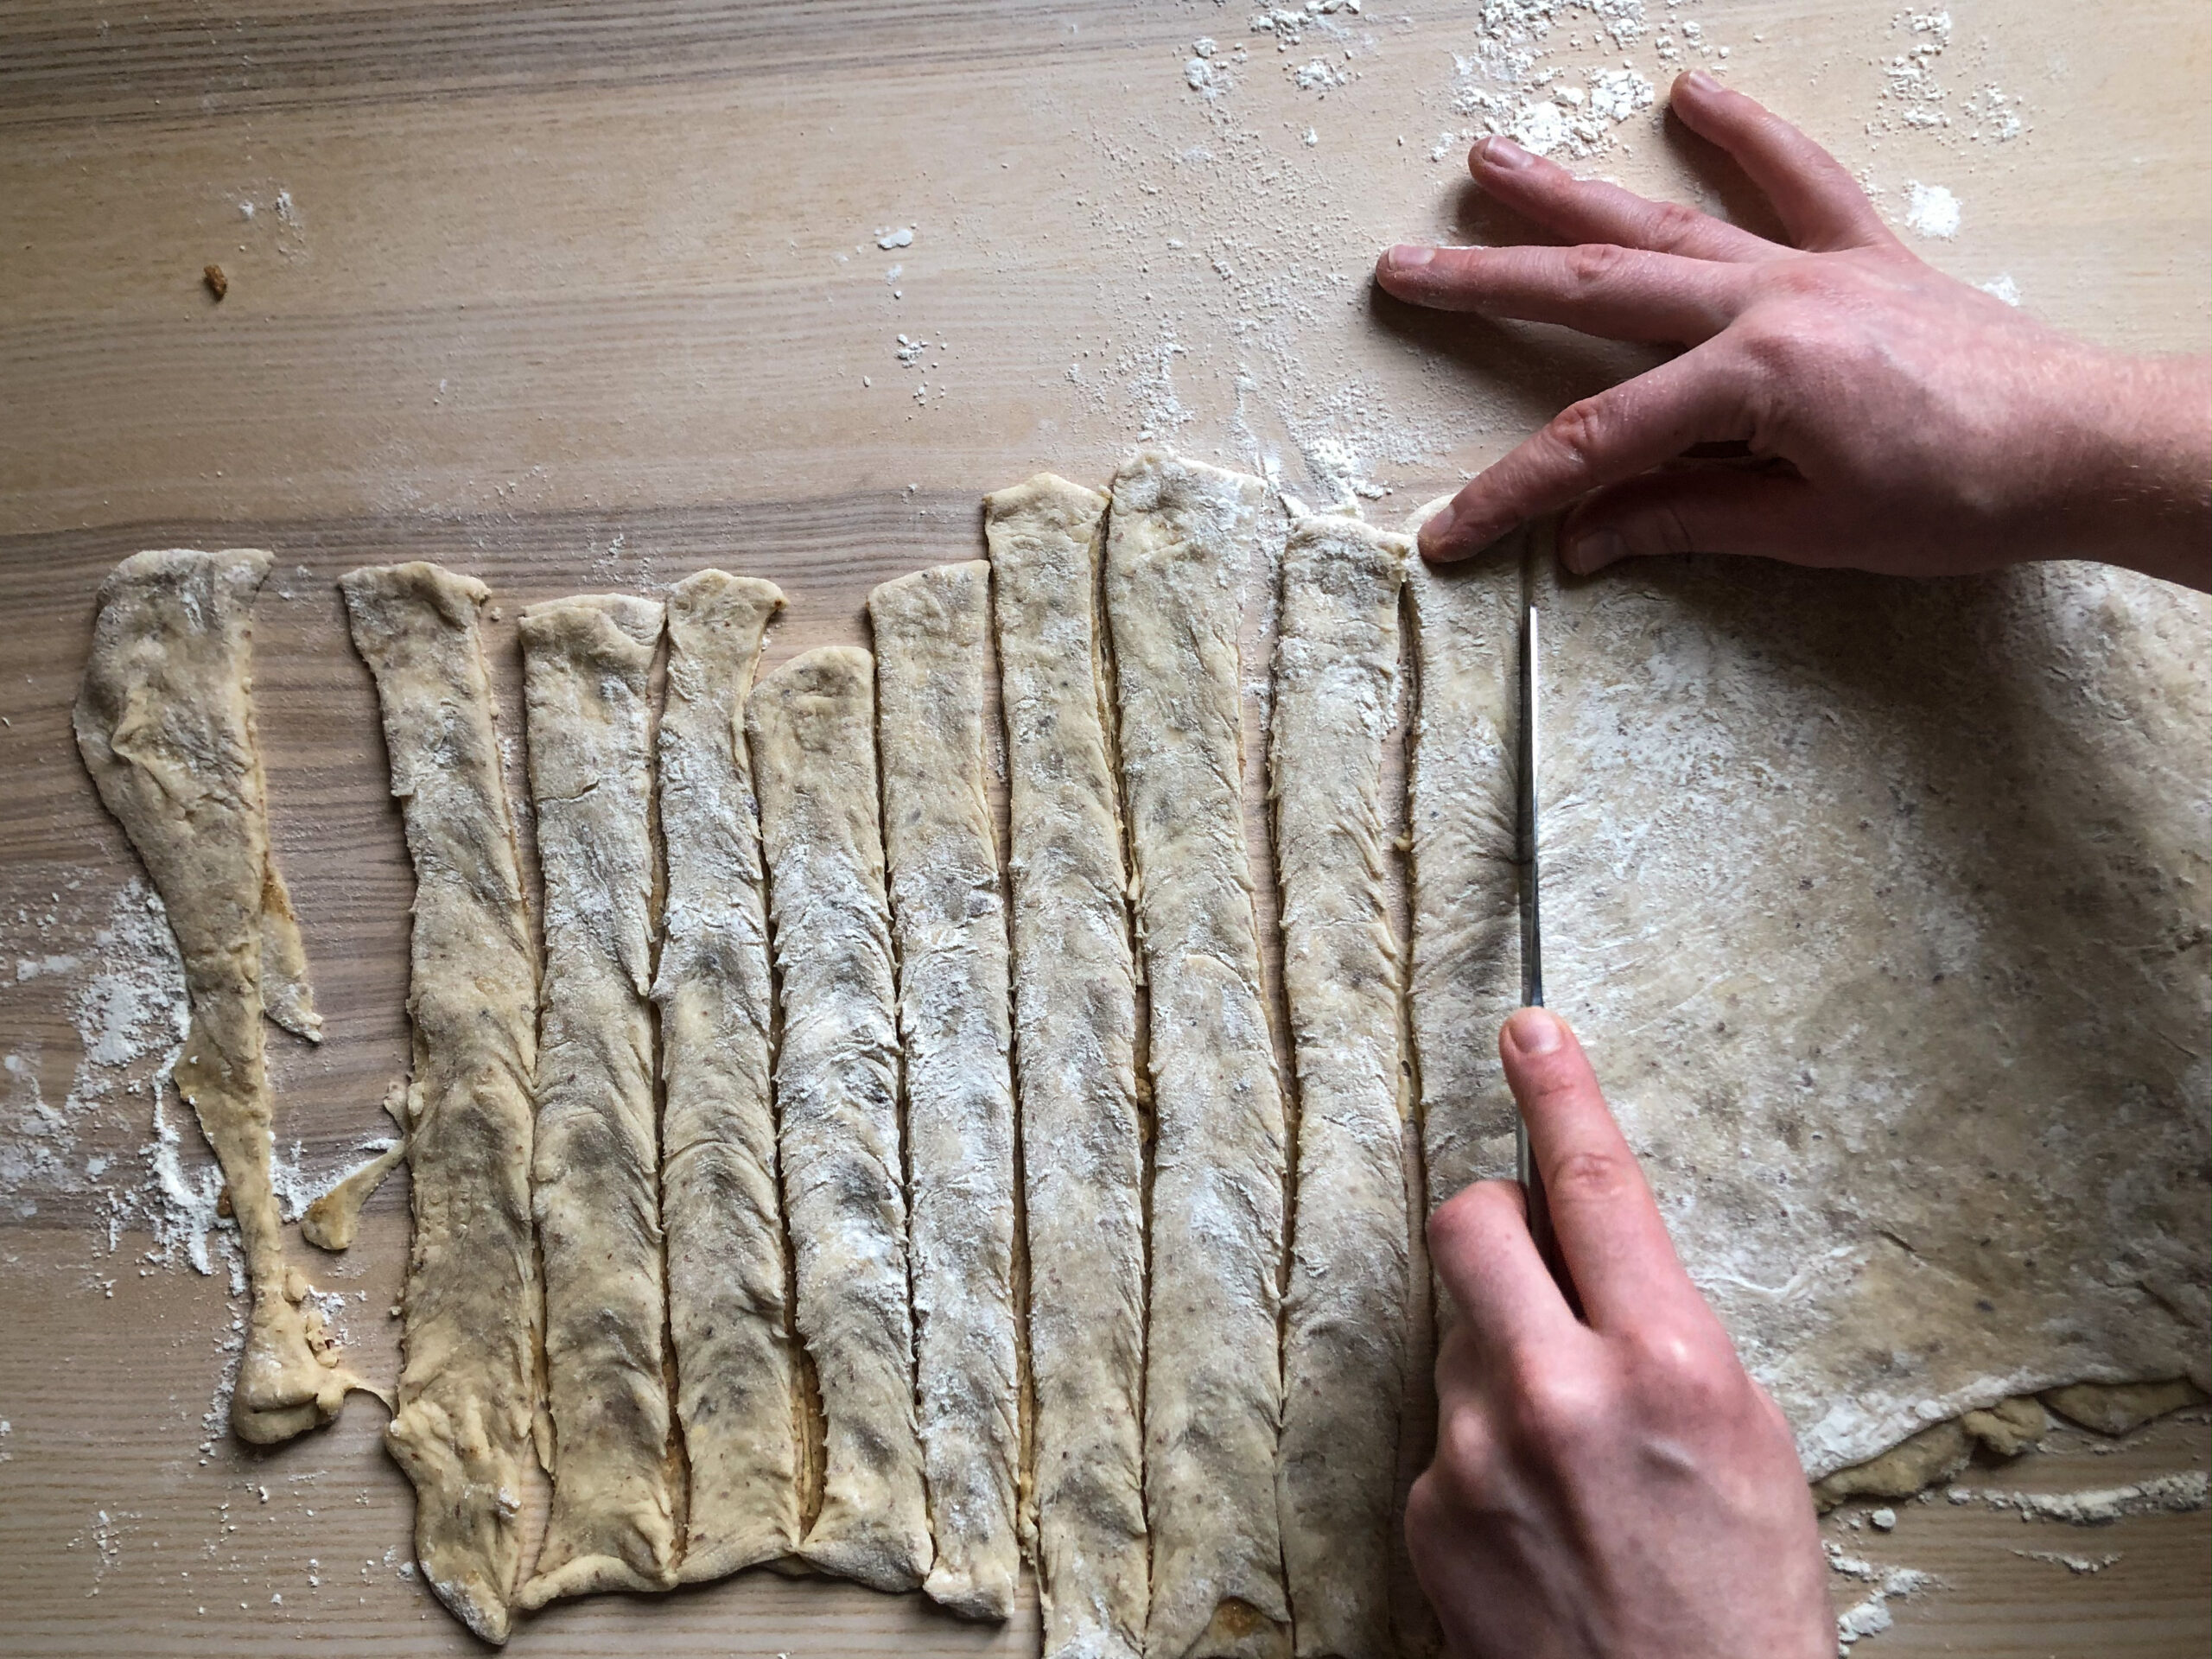 slicing the dough